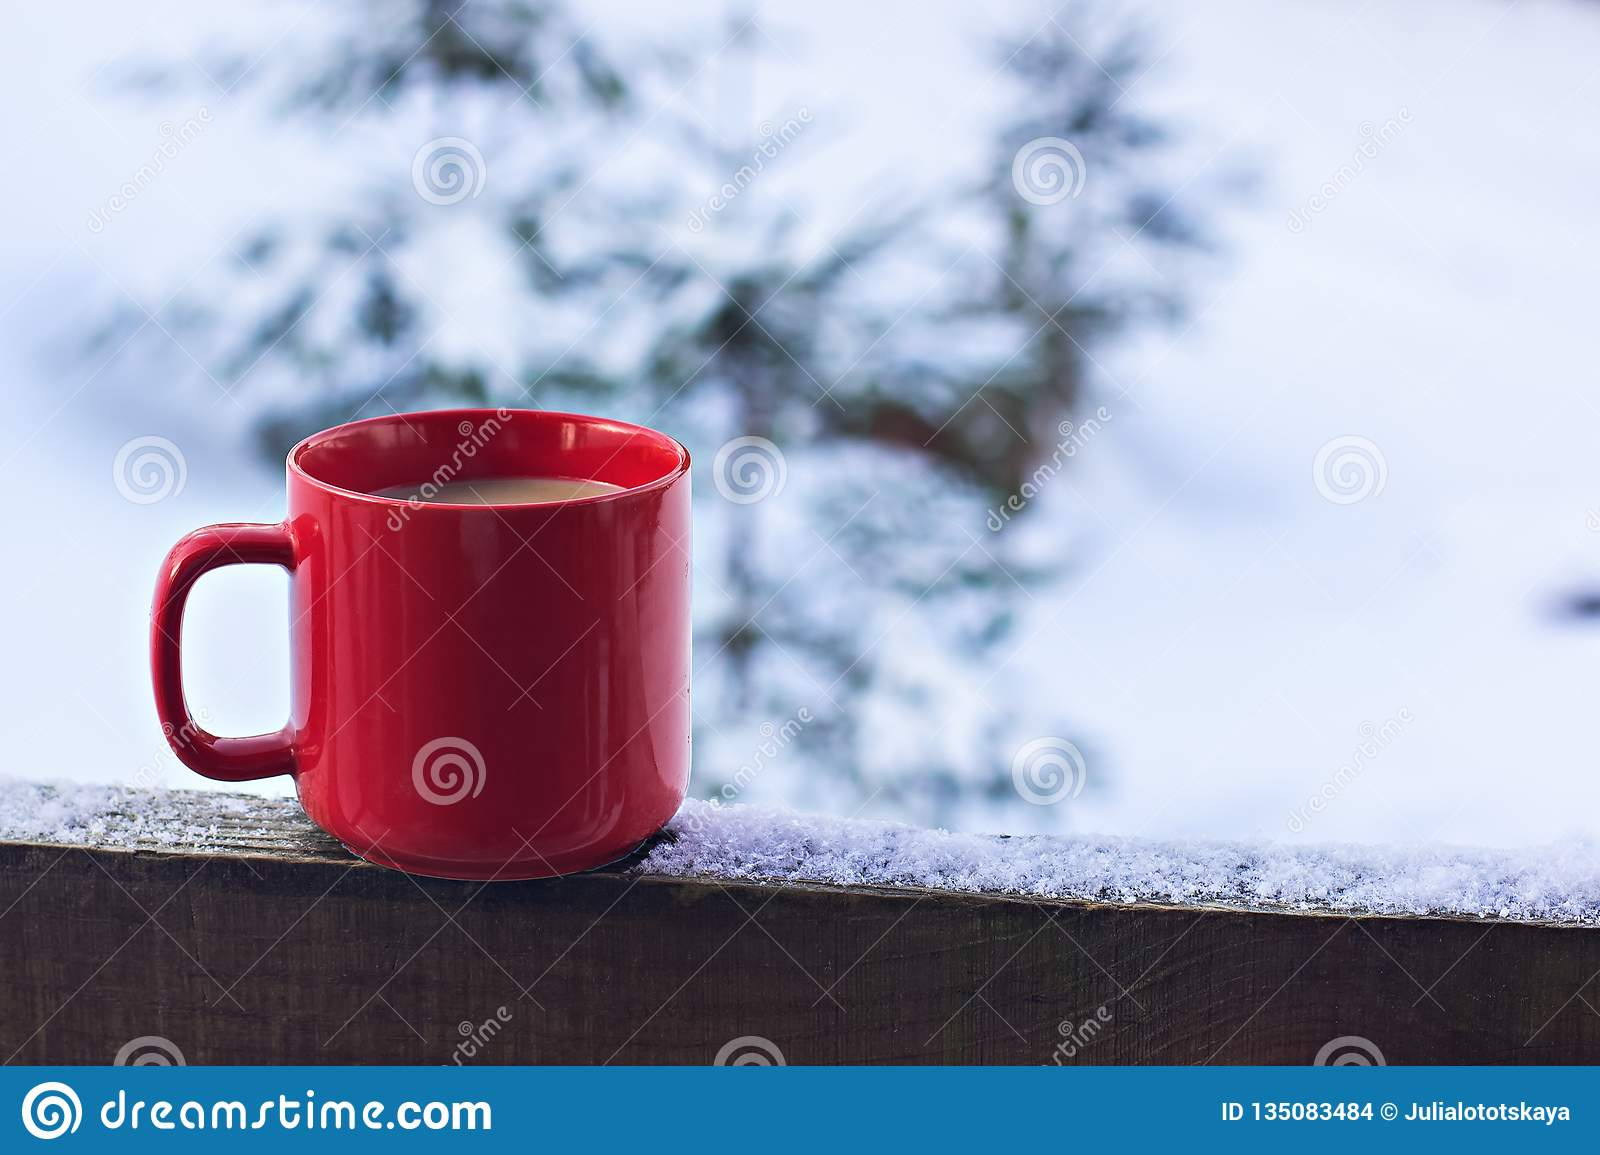 Cup with coffee, tea on the background of the winter landscape